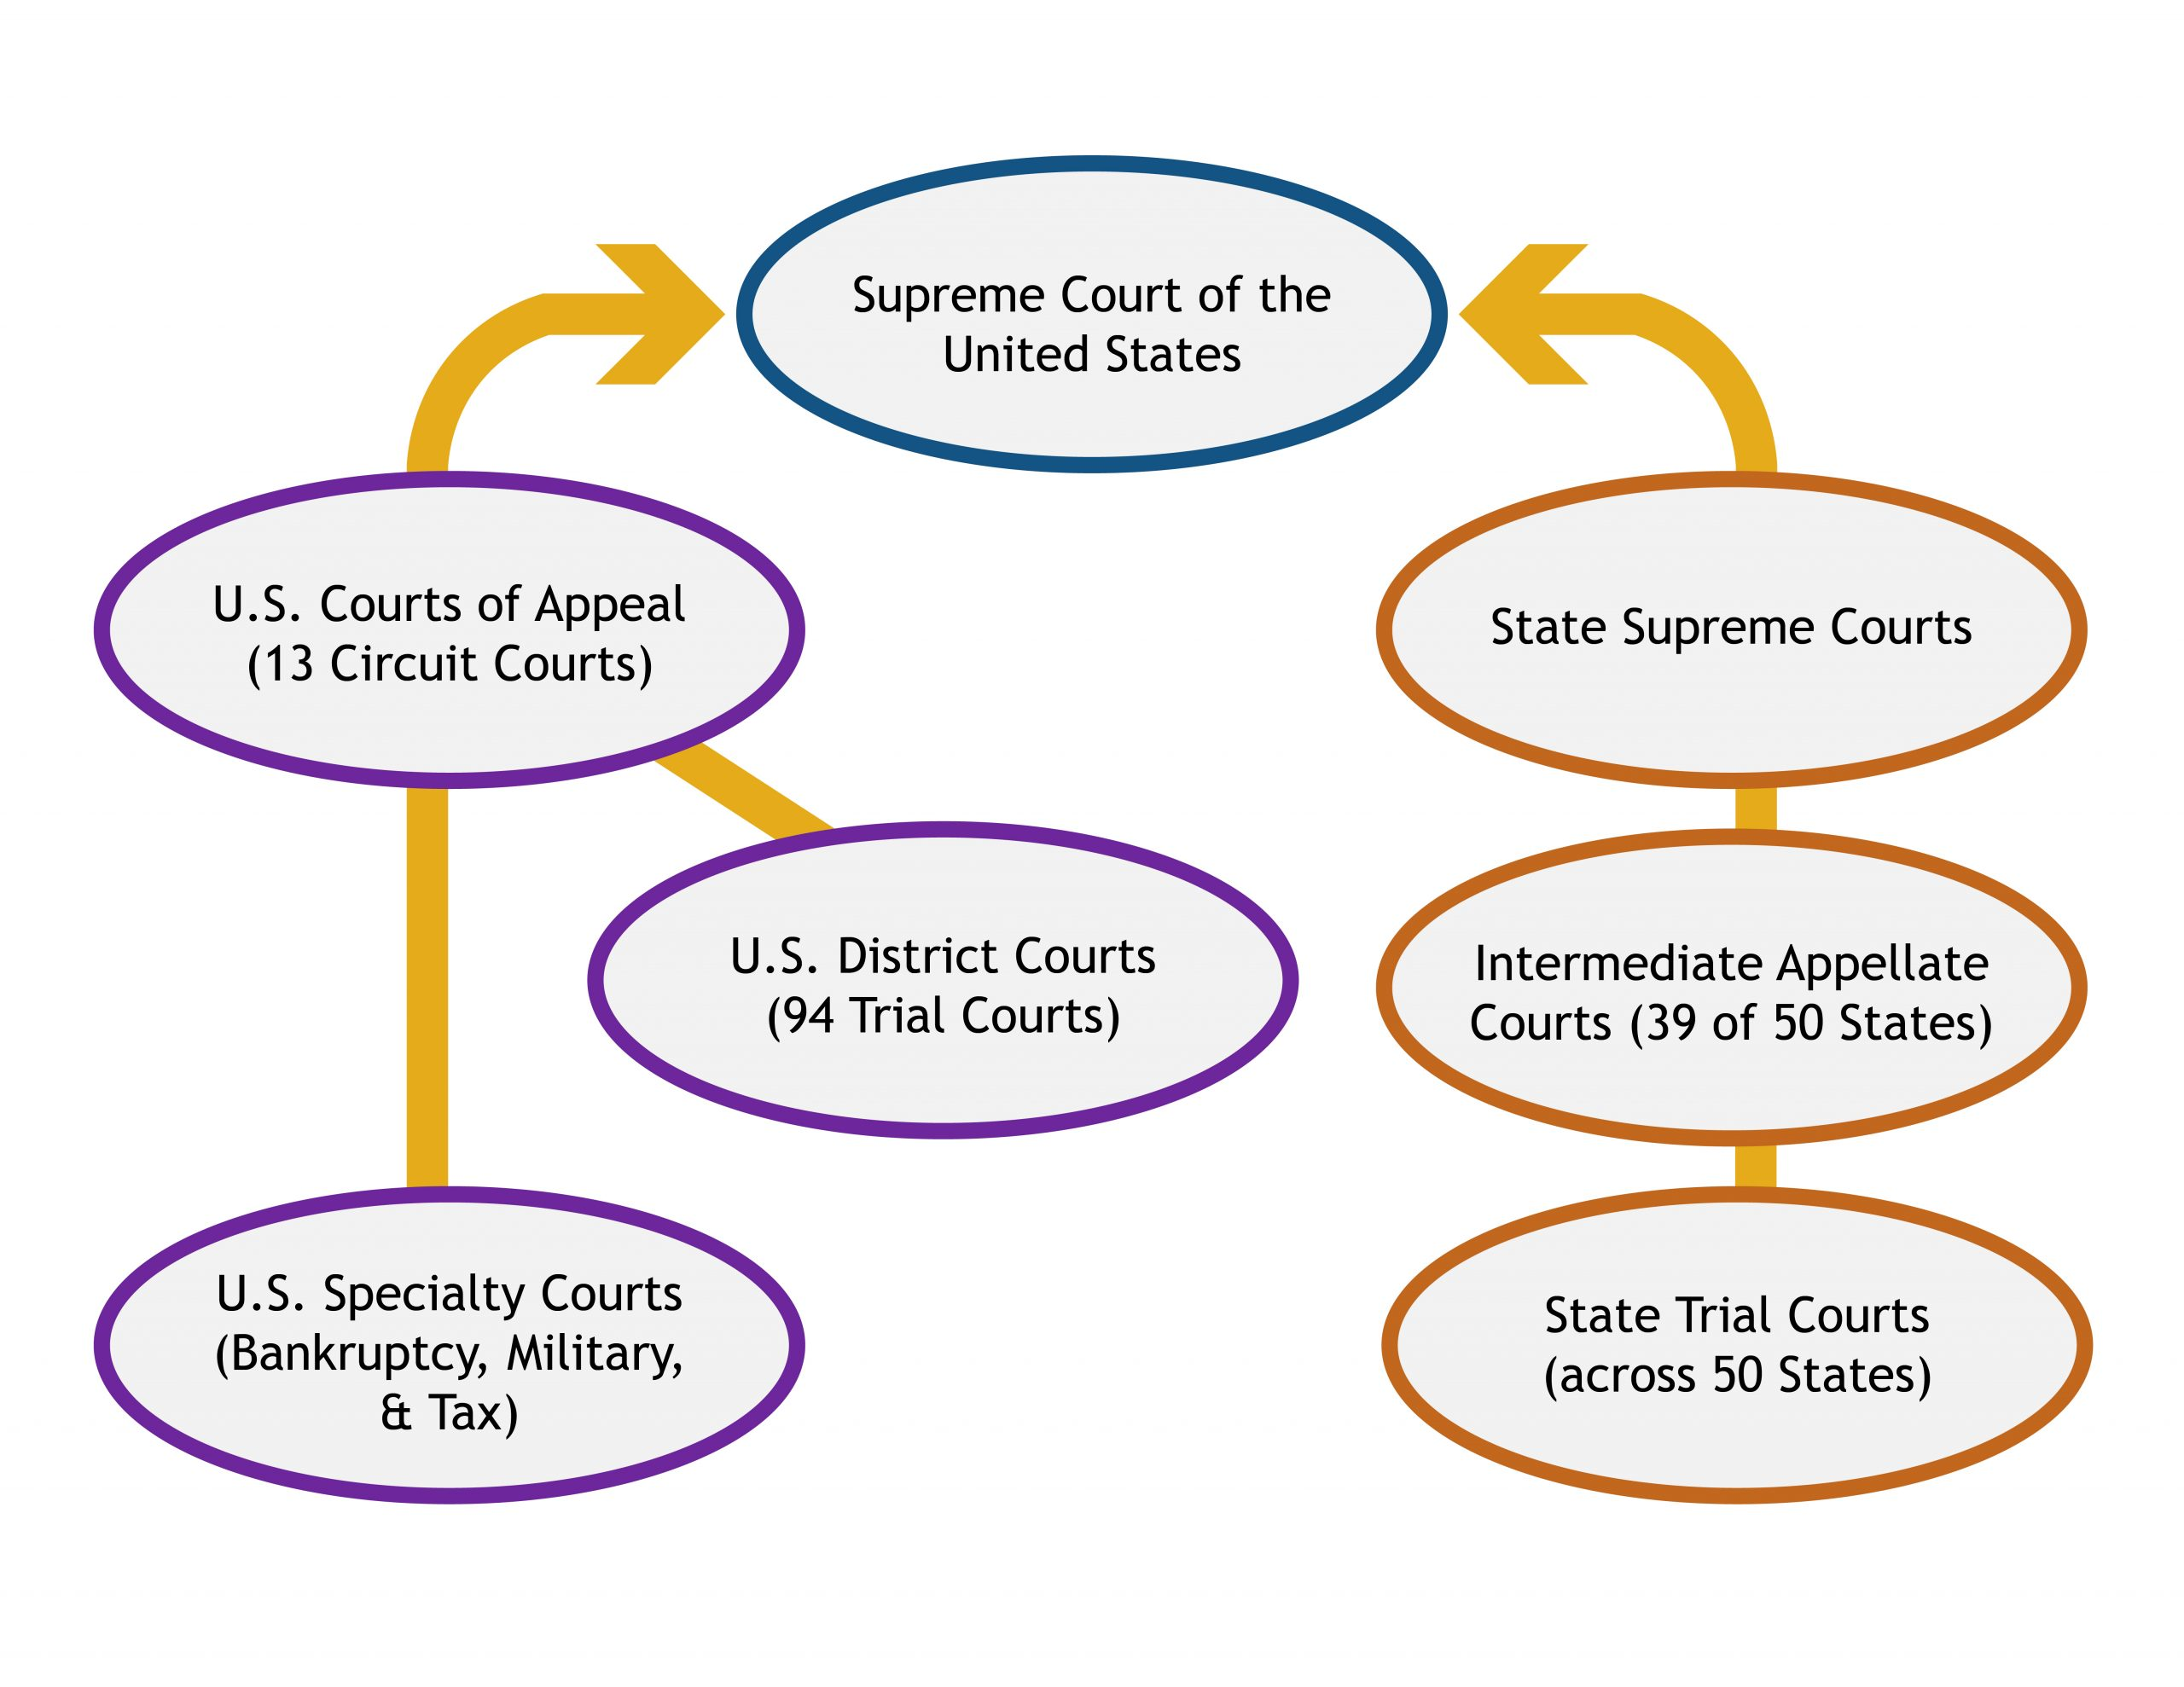 Flow chart showing the structure of trial and appellate courts